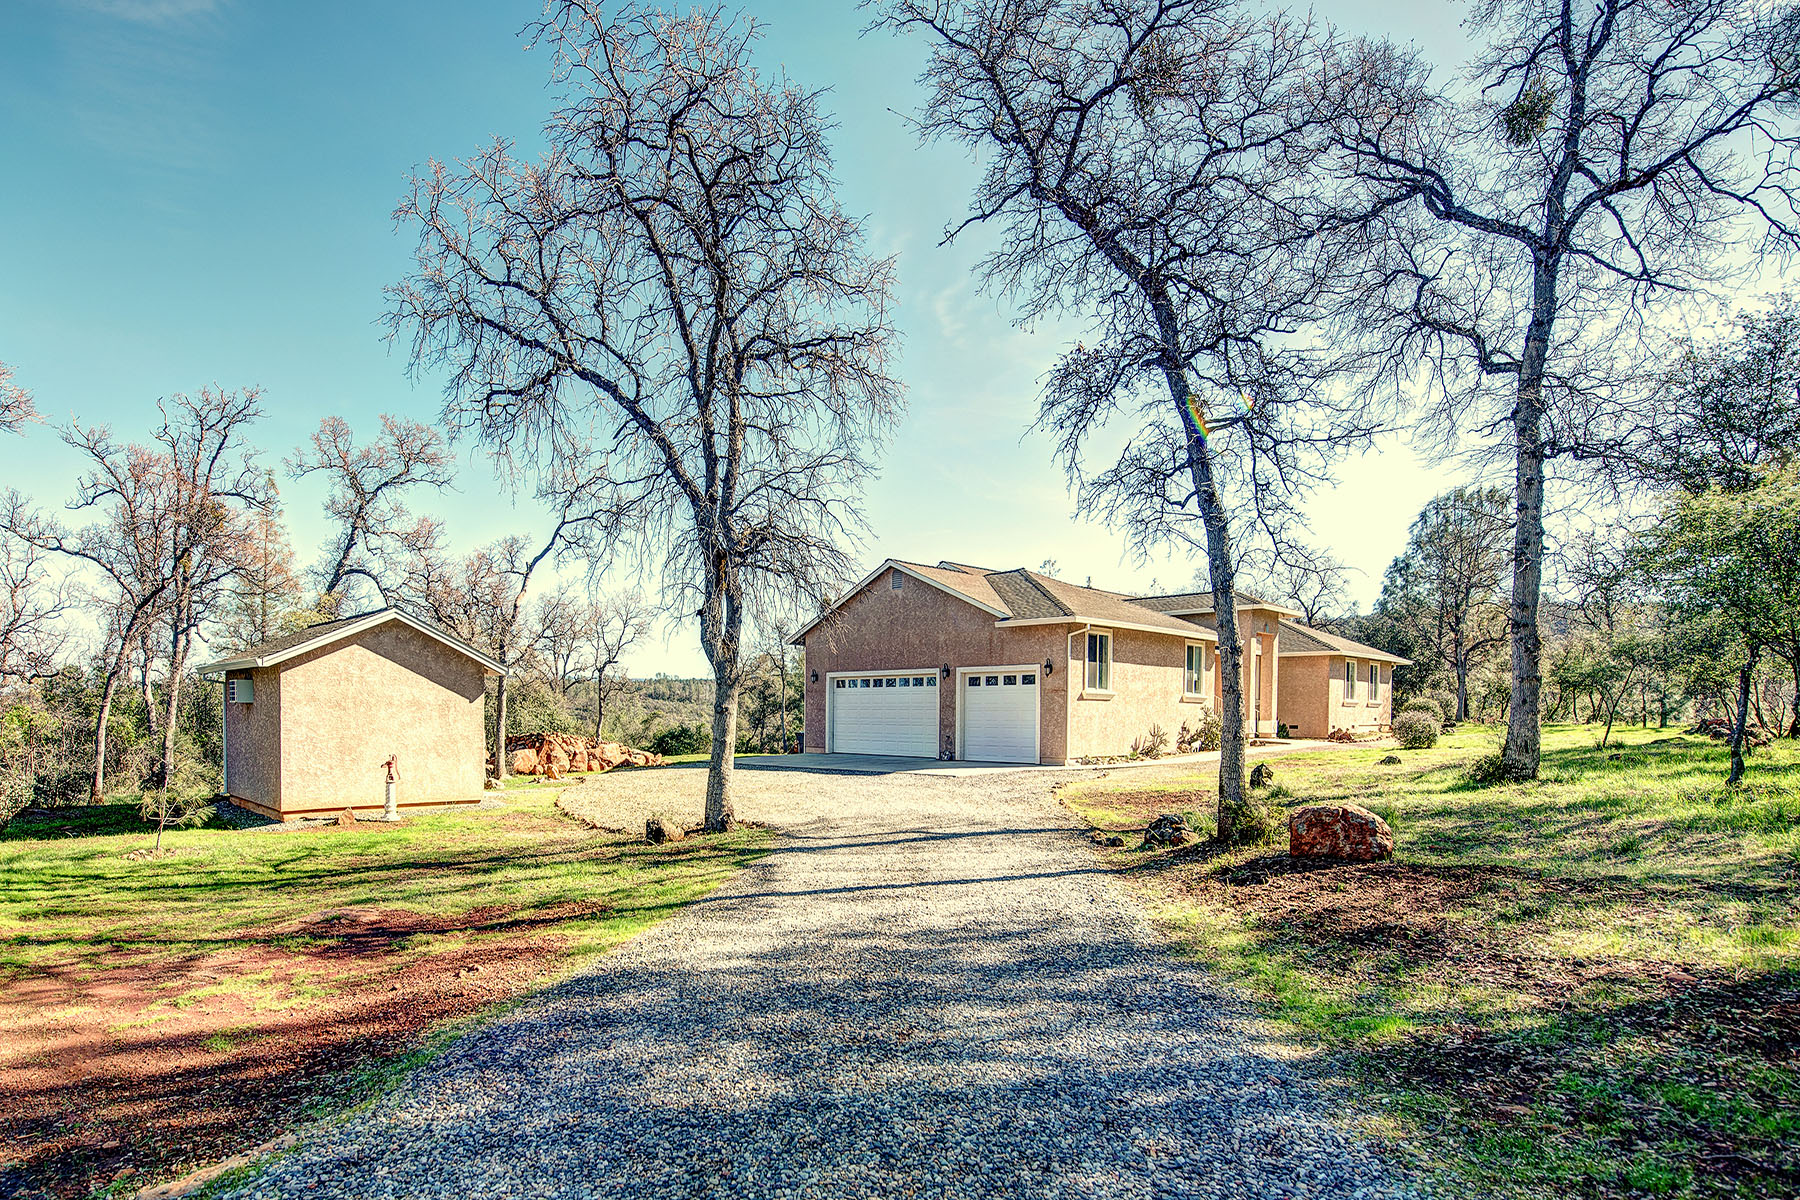 Single Family Home for Sale at Elegant Country Living on over Fifteen Serene Acres 28628 Alpine Way Shingletown, California 96088 United States